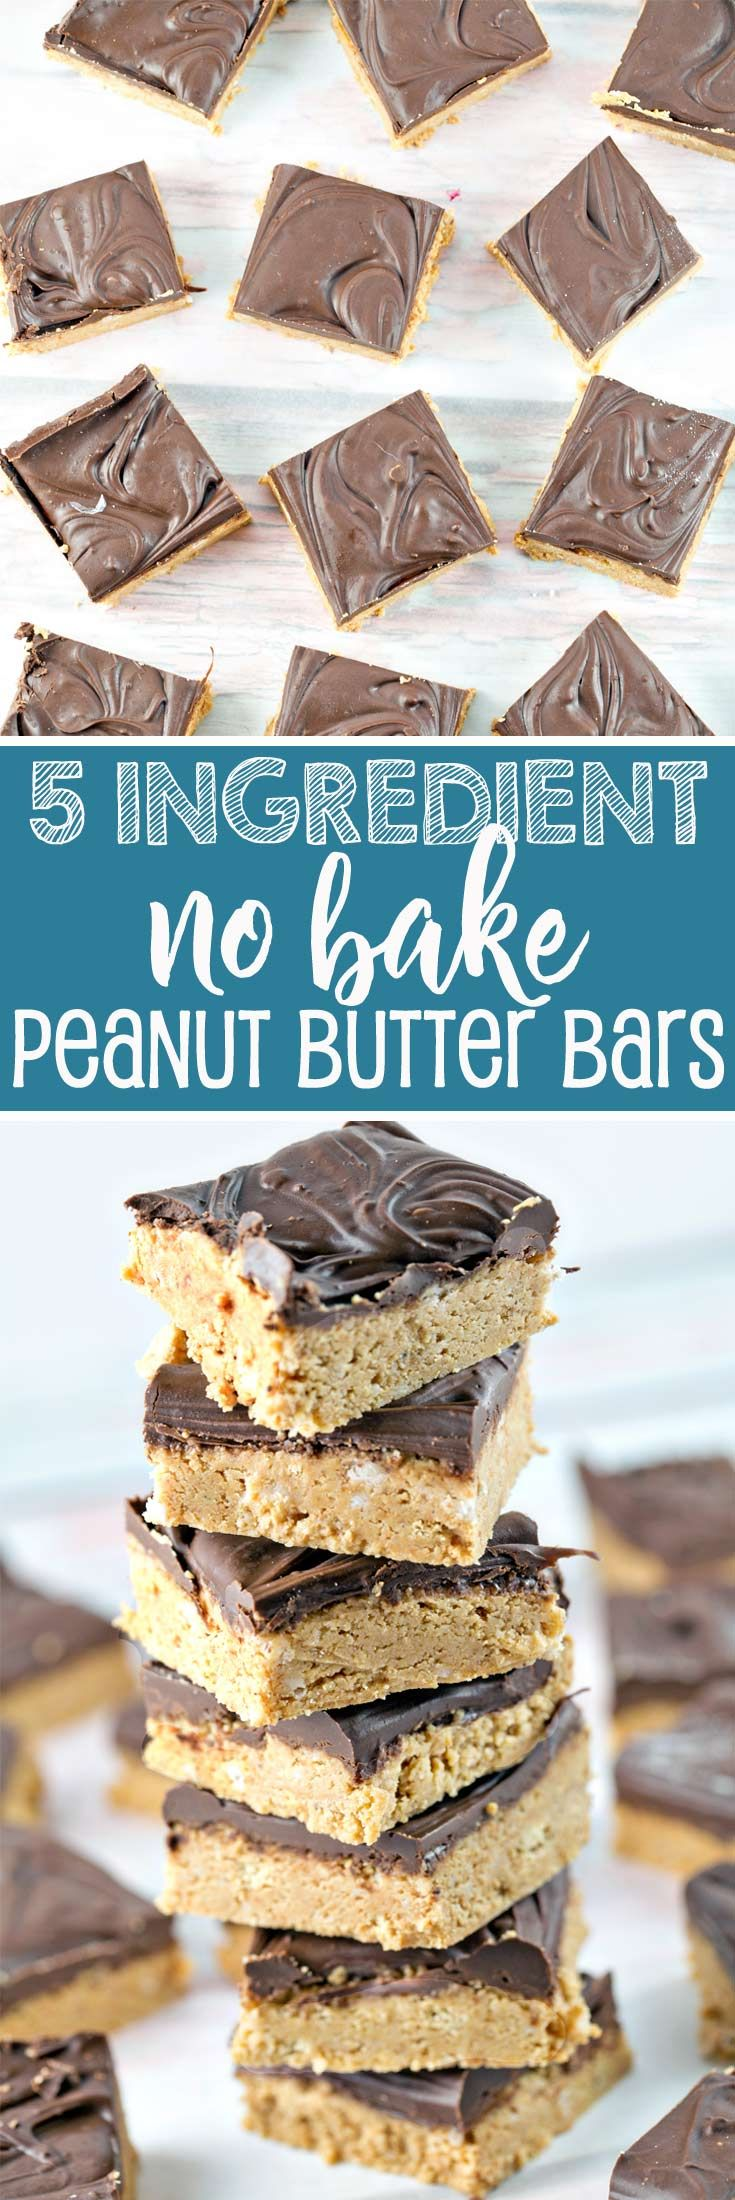 No Bake Peanut Butter Bars: Five ingredients and ten minutes are all you need for this crowd-pleasing favorite! {Bunsen Burner Bakery} via @bnsnbrnrbakery